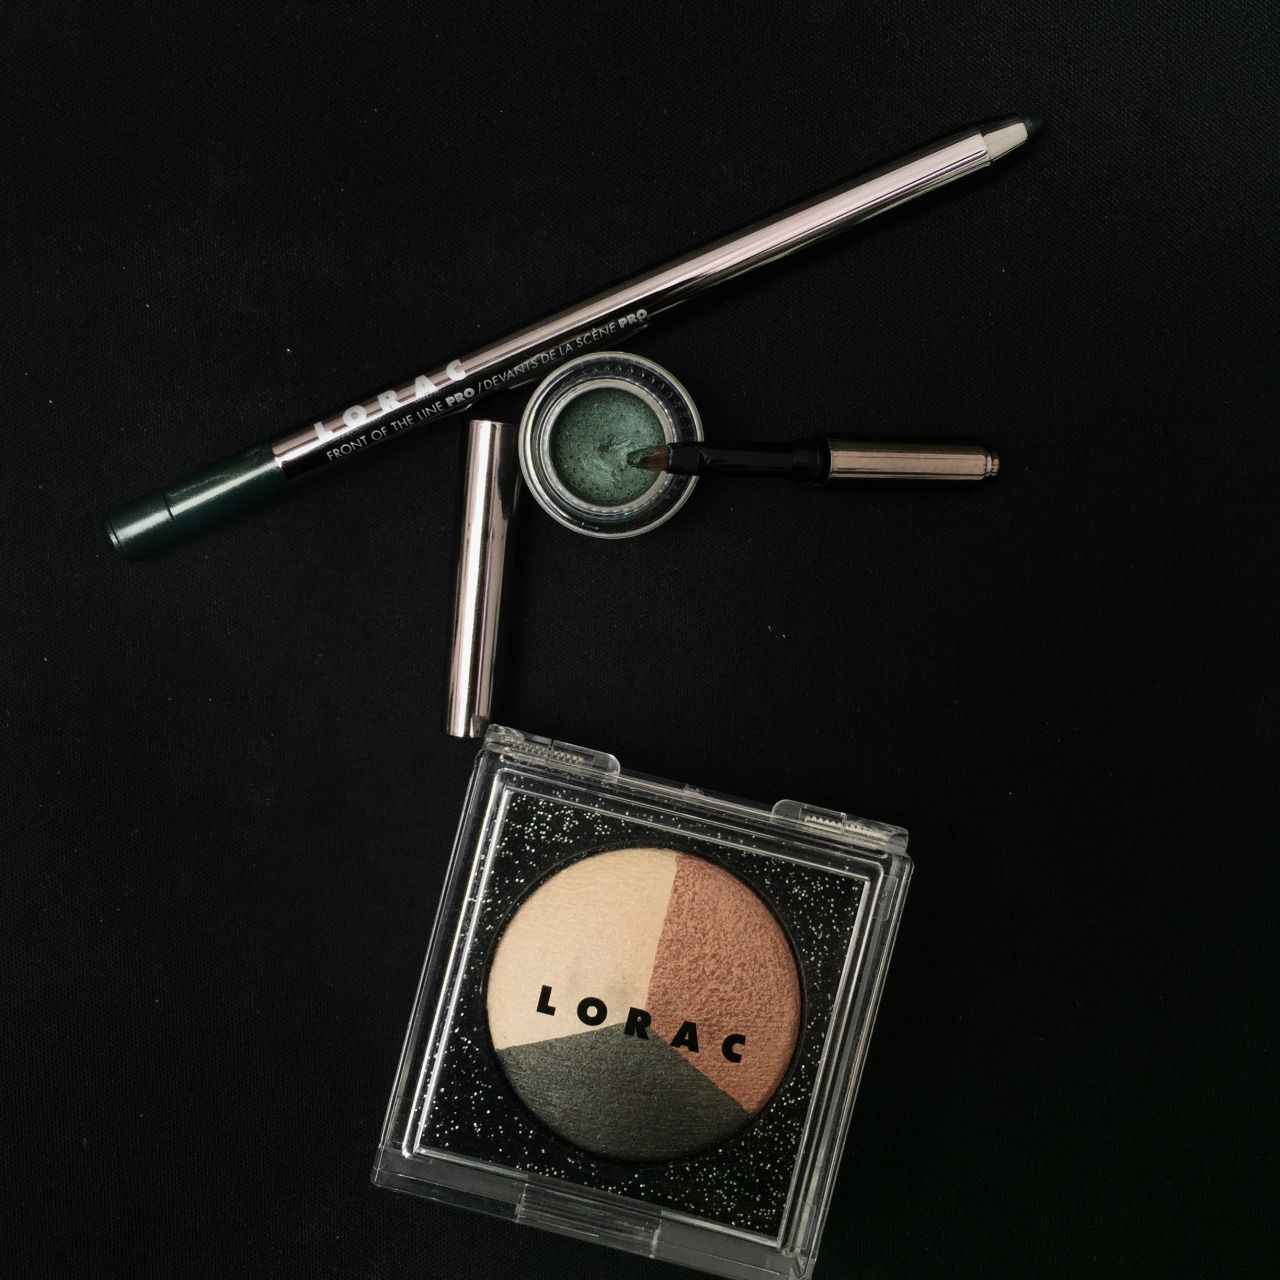 Having A Green Moment With Our Lorac Starry Eyed Baked Eye Shadow Lt Pro Eyeliner Pencil Waterproof Liner